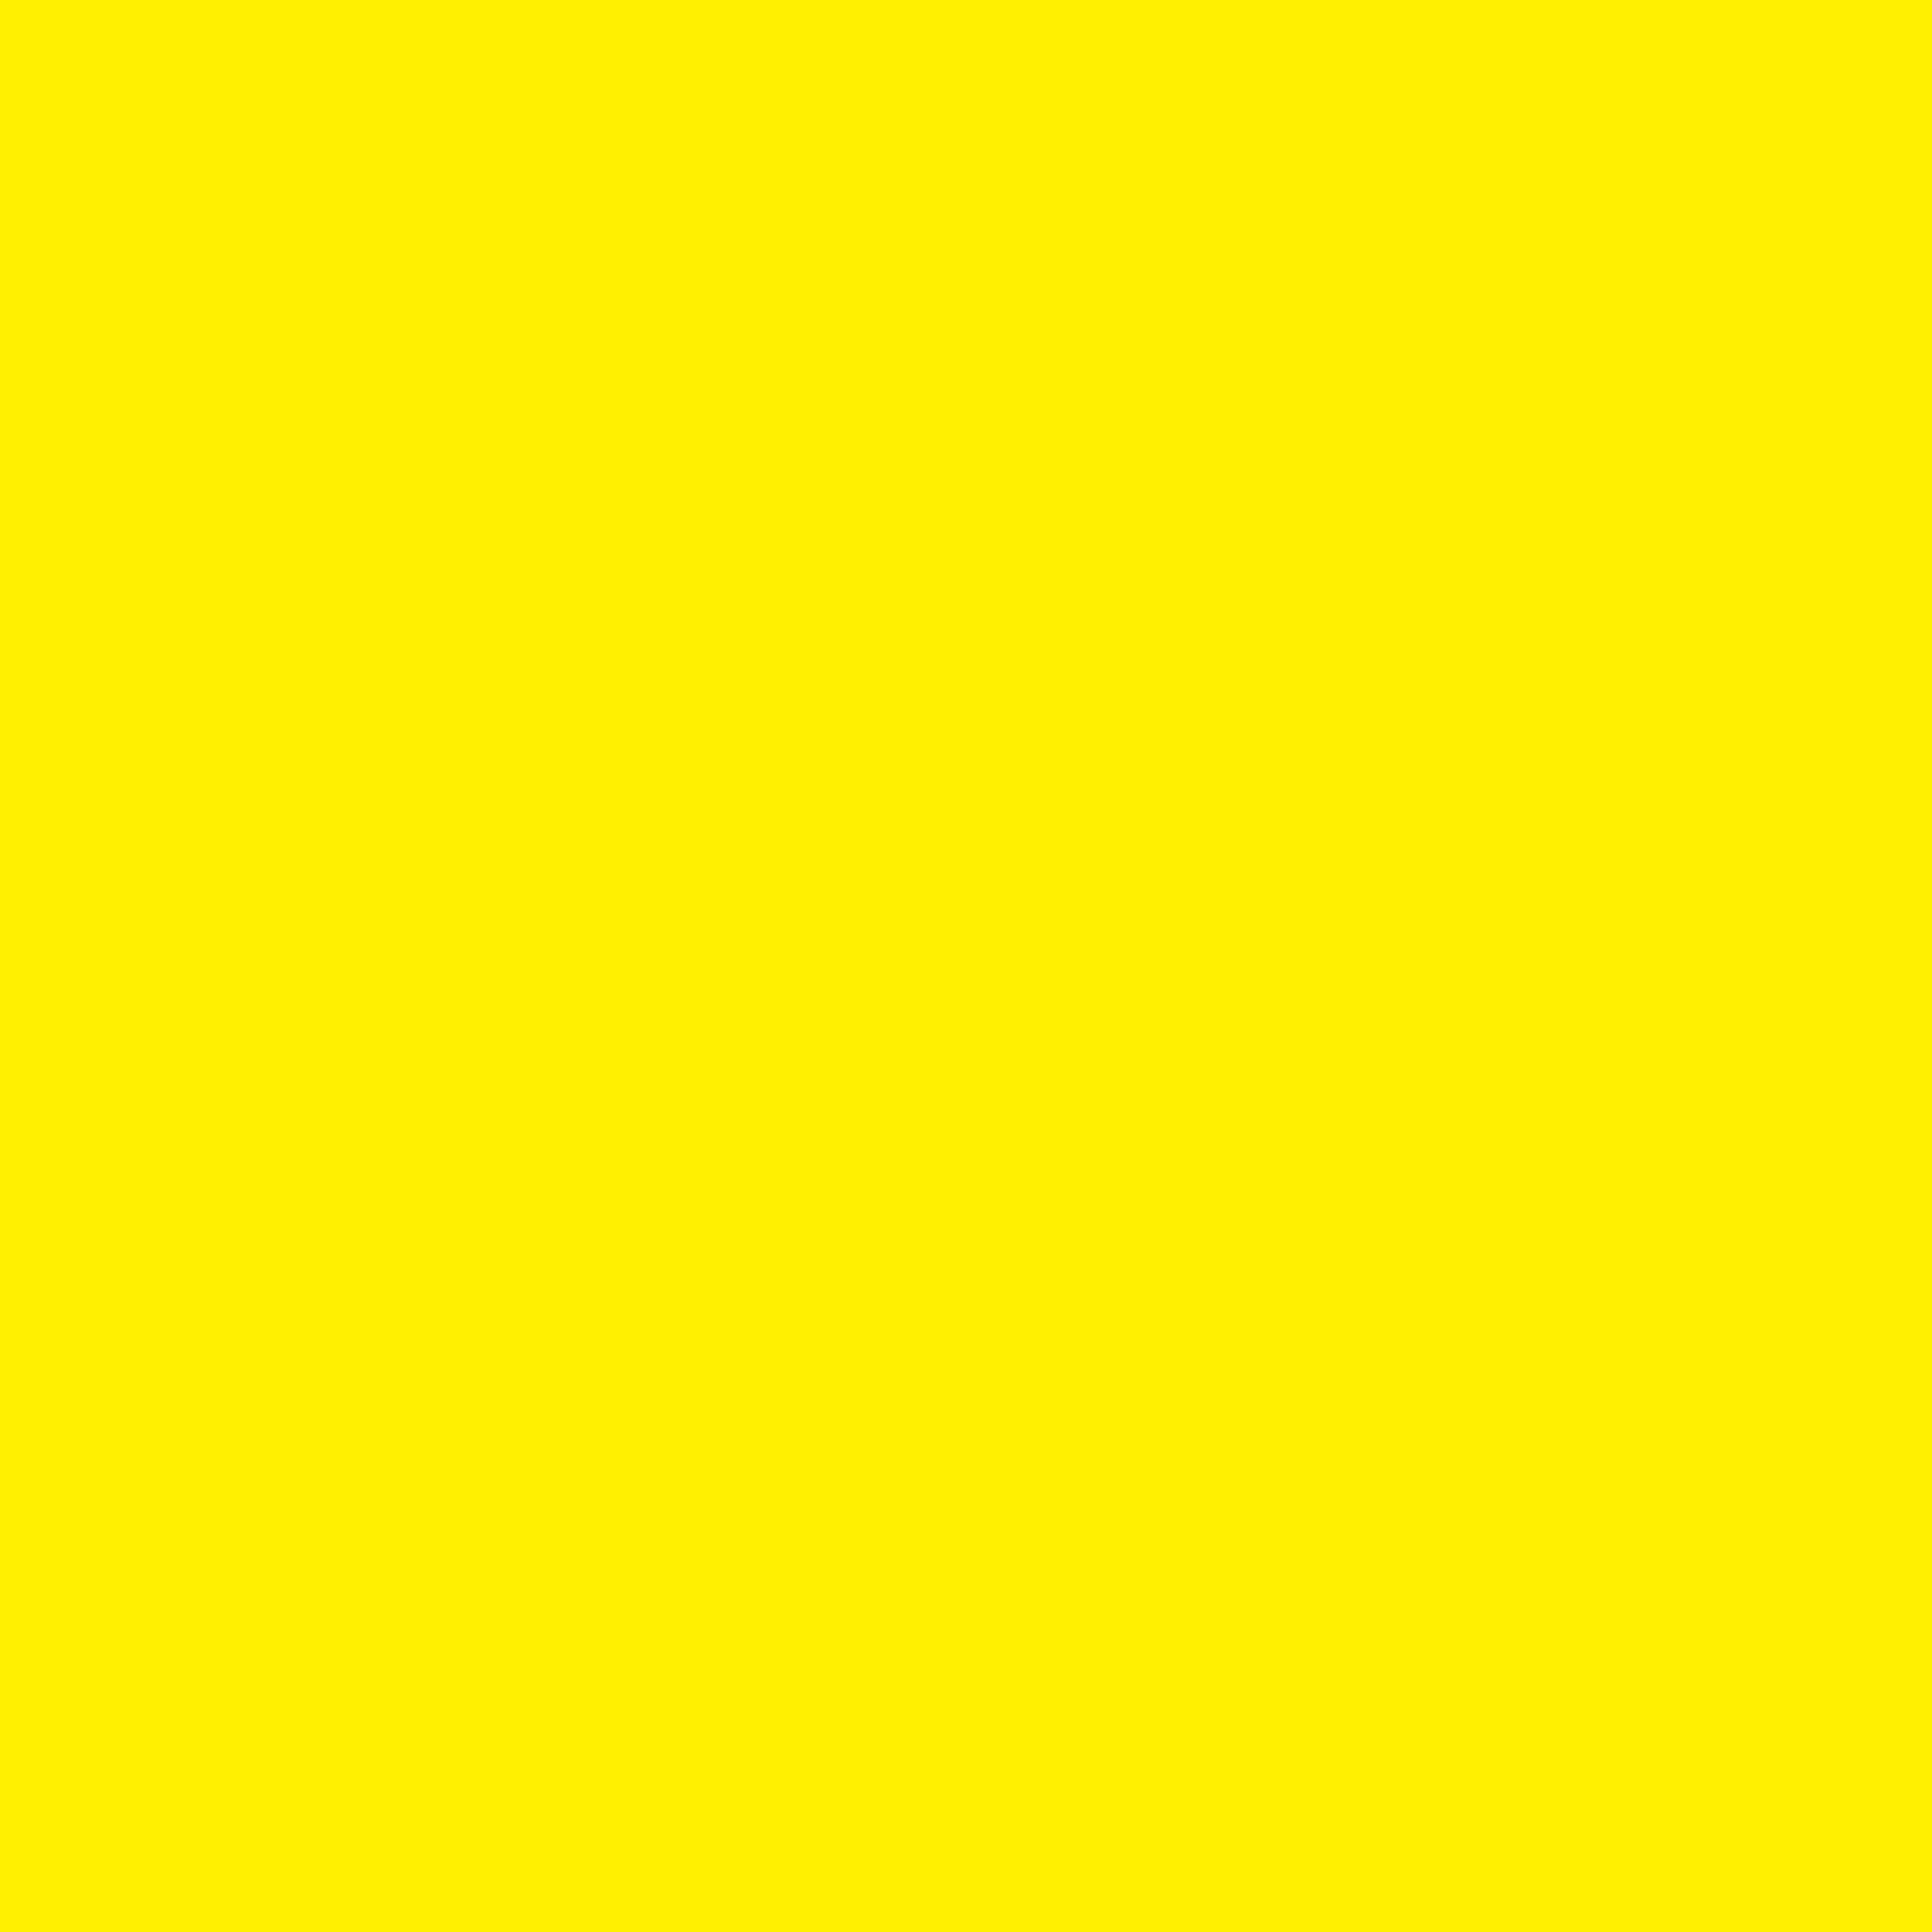 3600x3600 Canary Yellow Solid Color Background